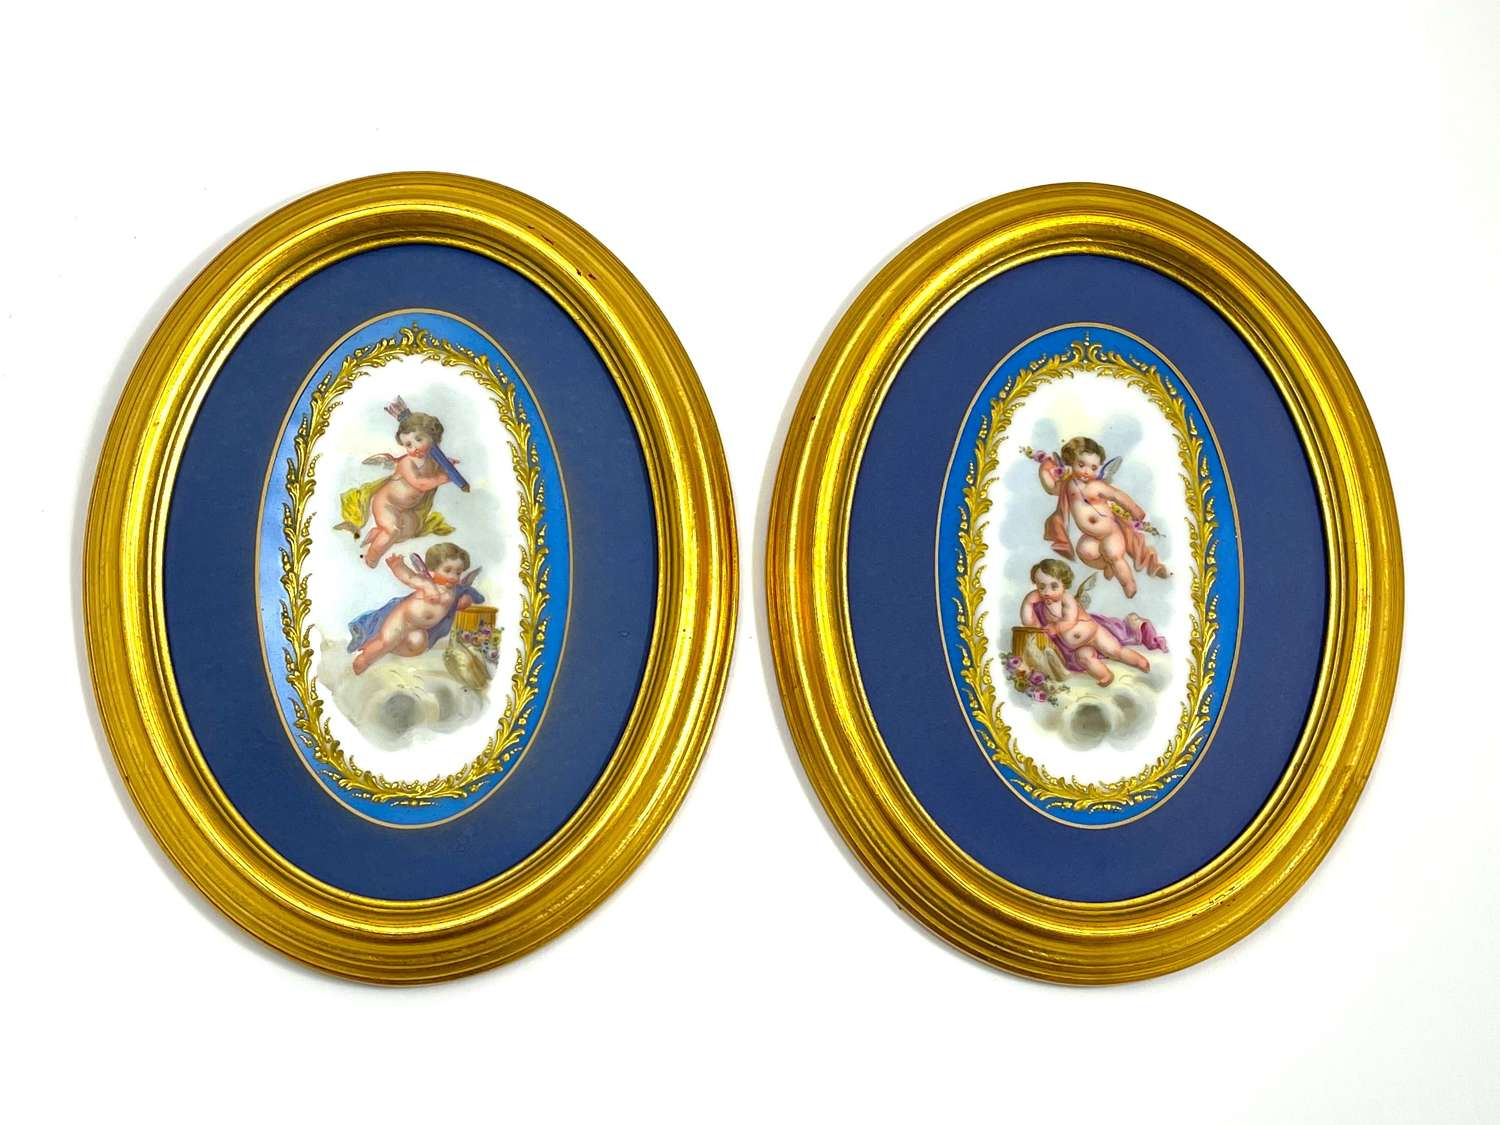 A Pair of Antique French 'Sevres' Turquoise Porcelain Plaques